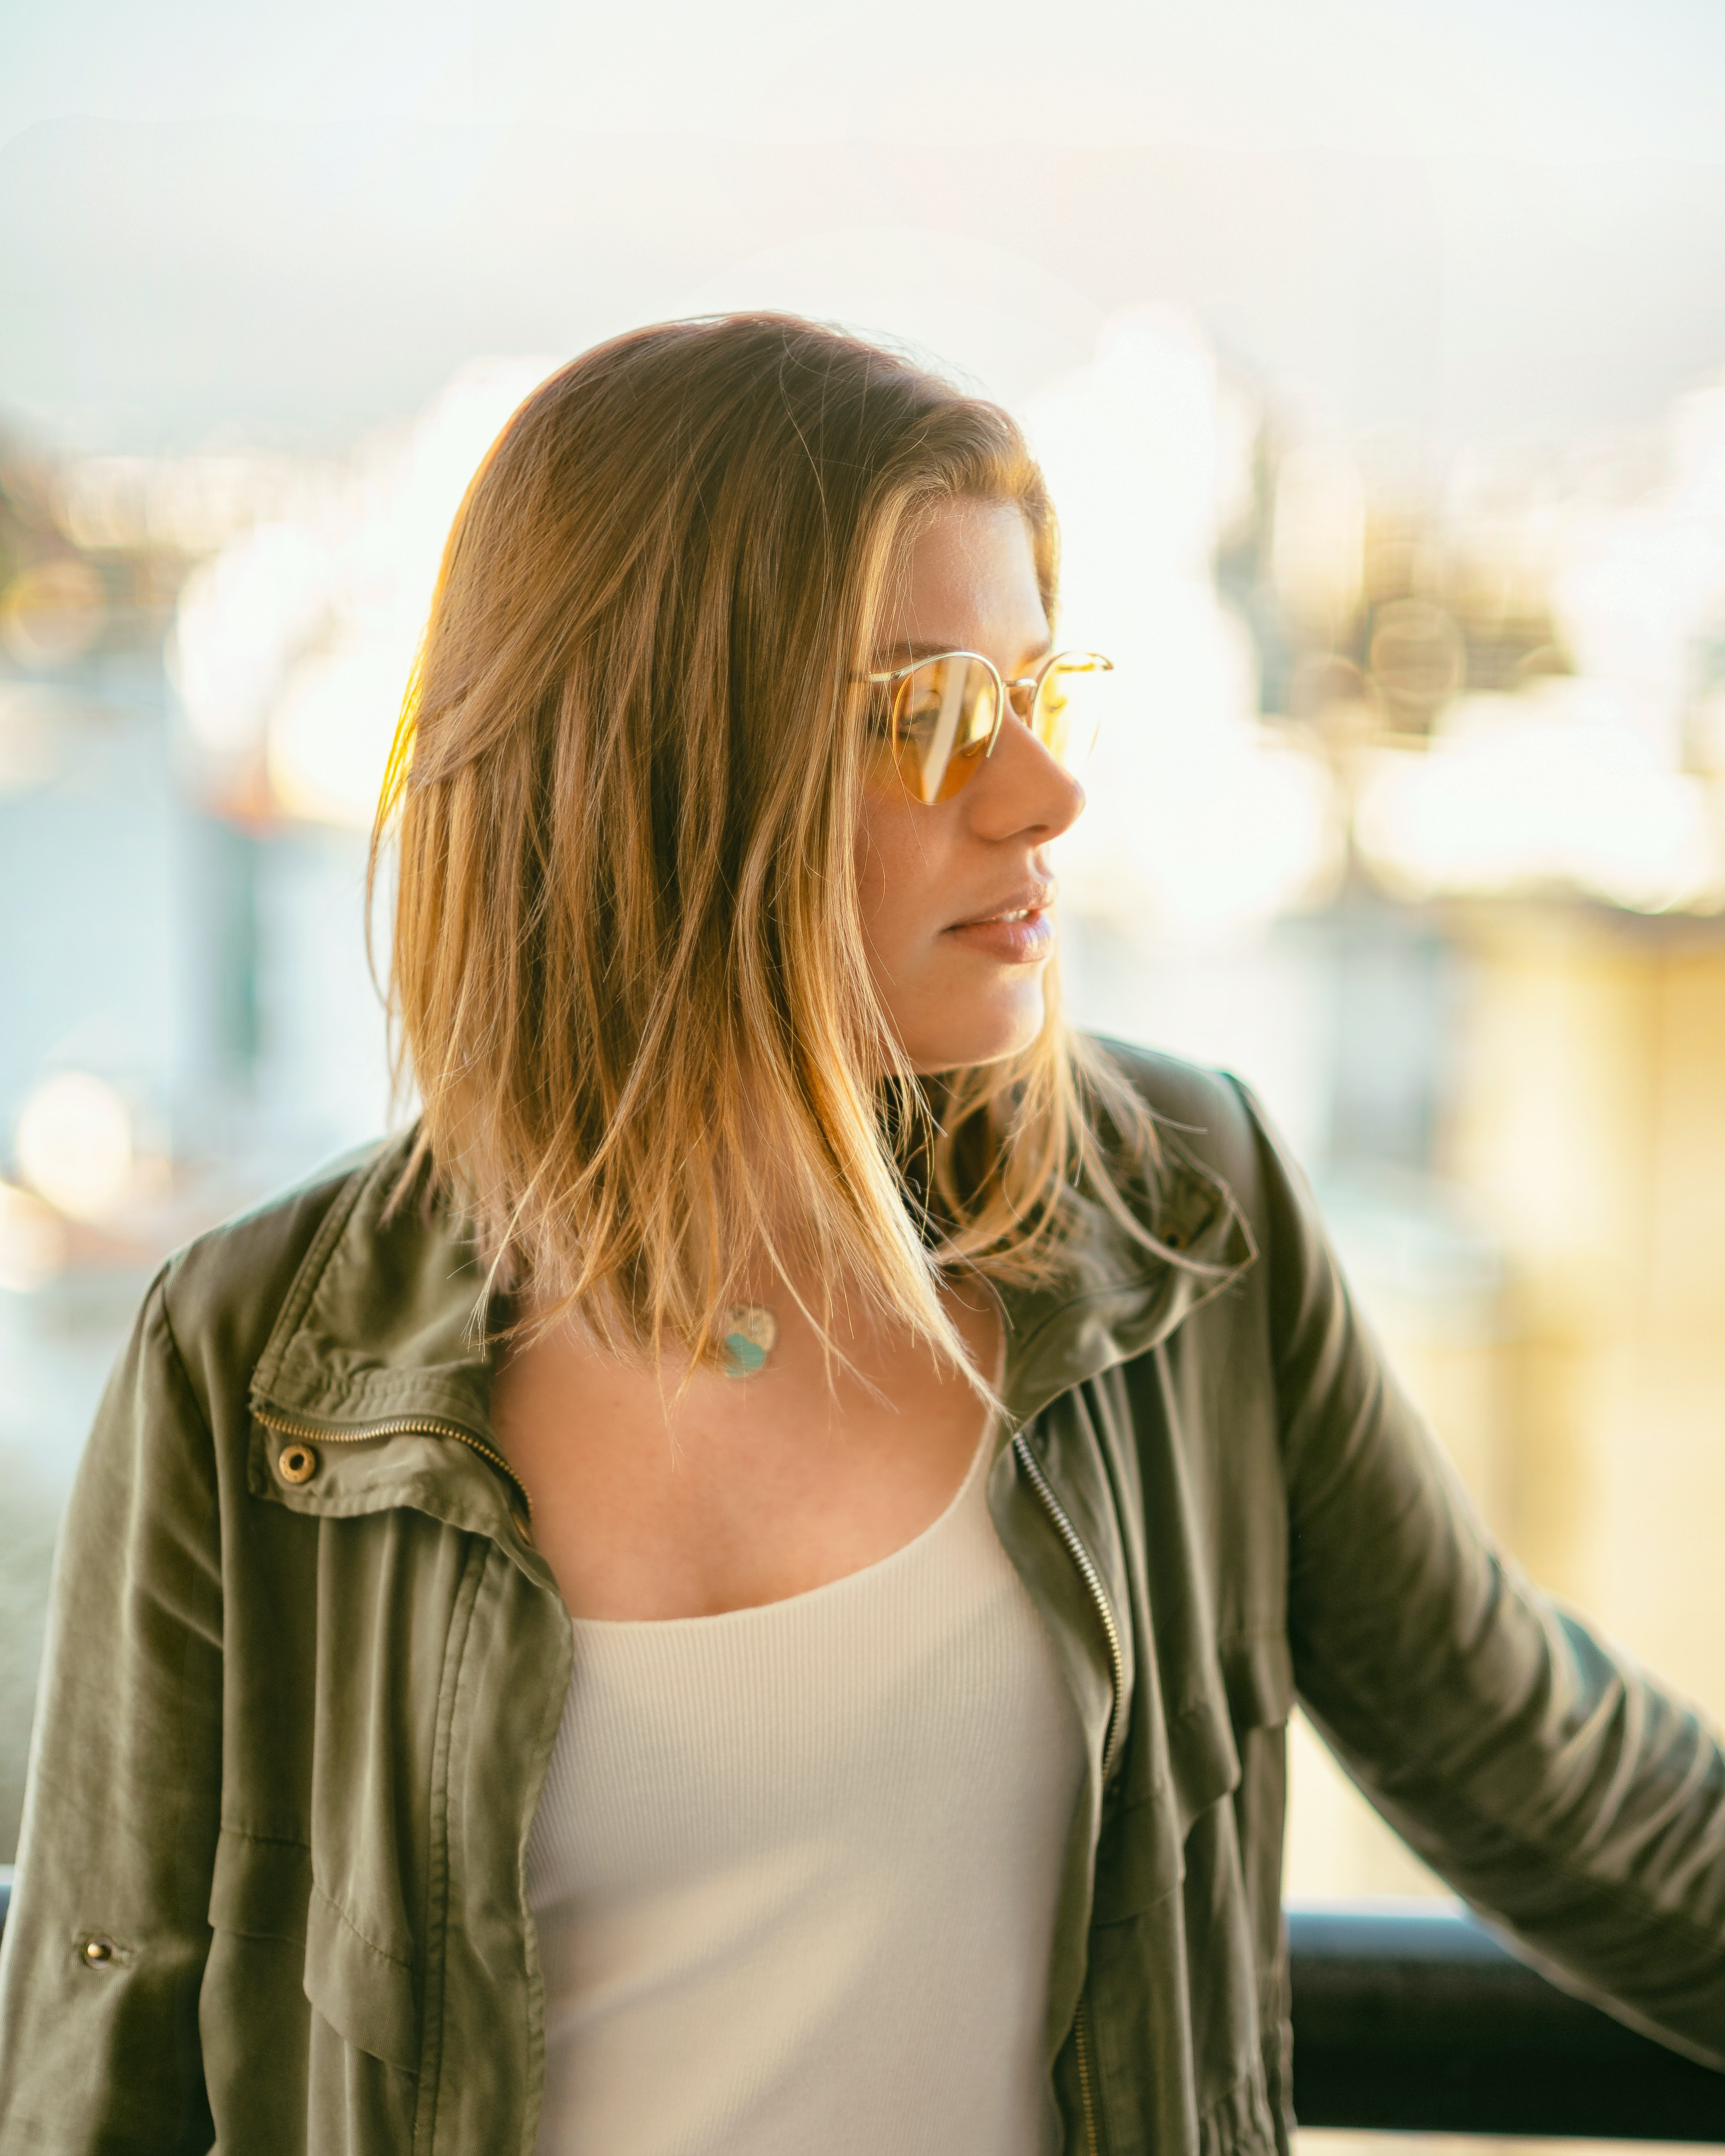 selective focus photography of woman wearing long-sleeved shirt and sunglasses